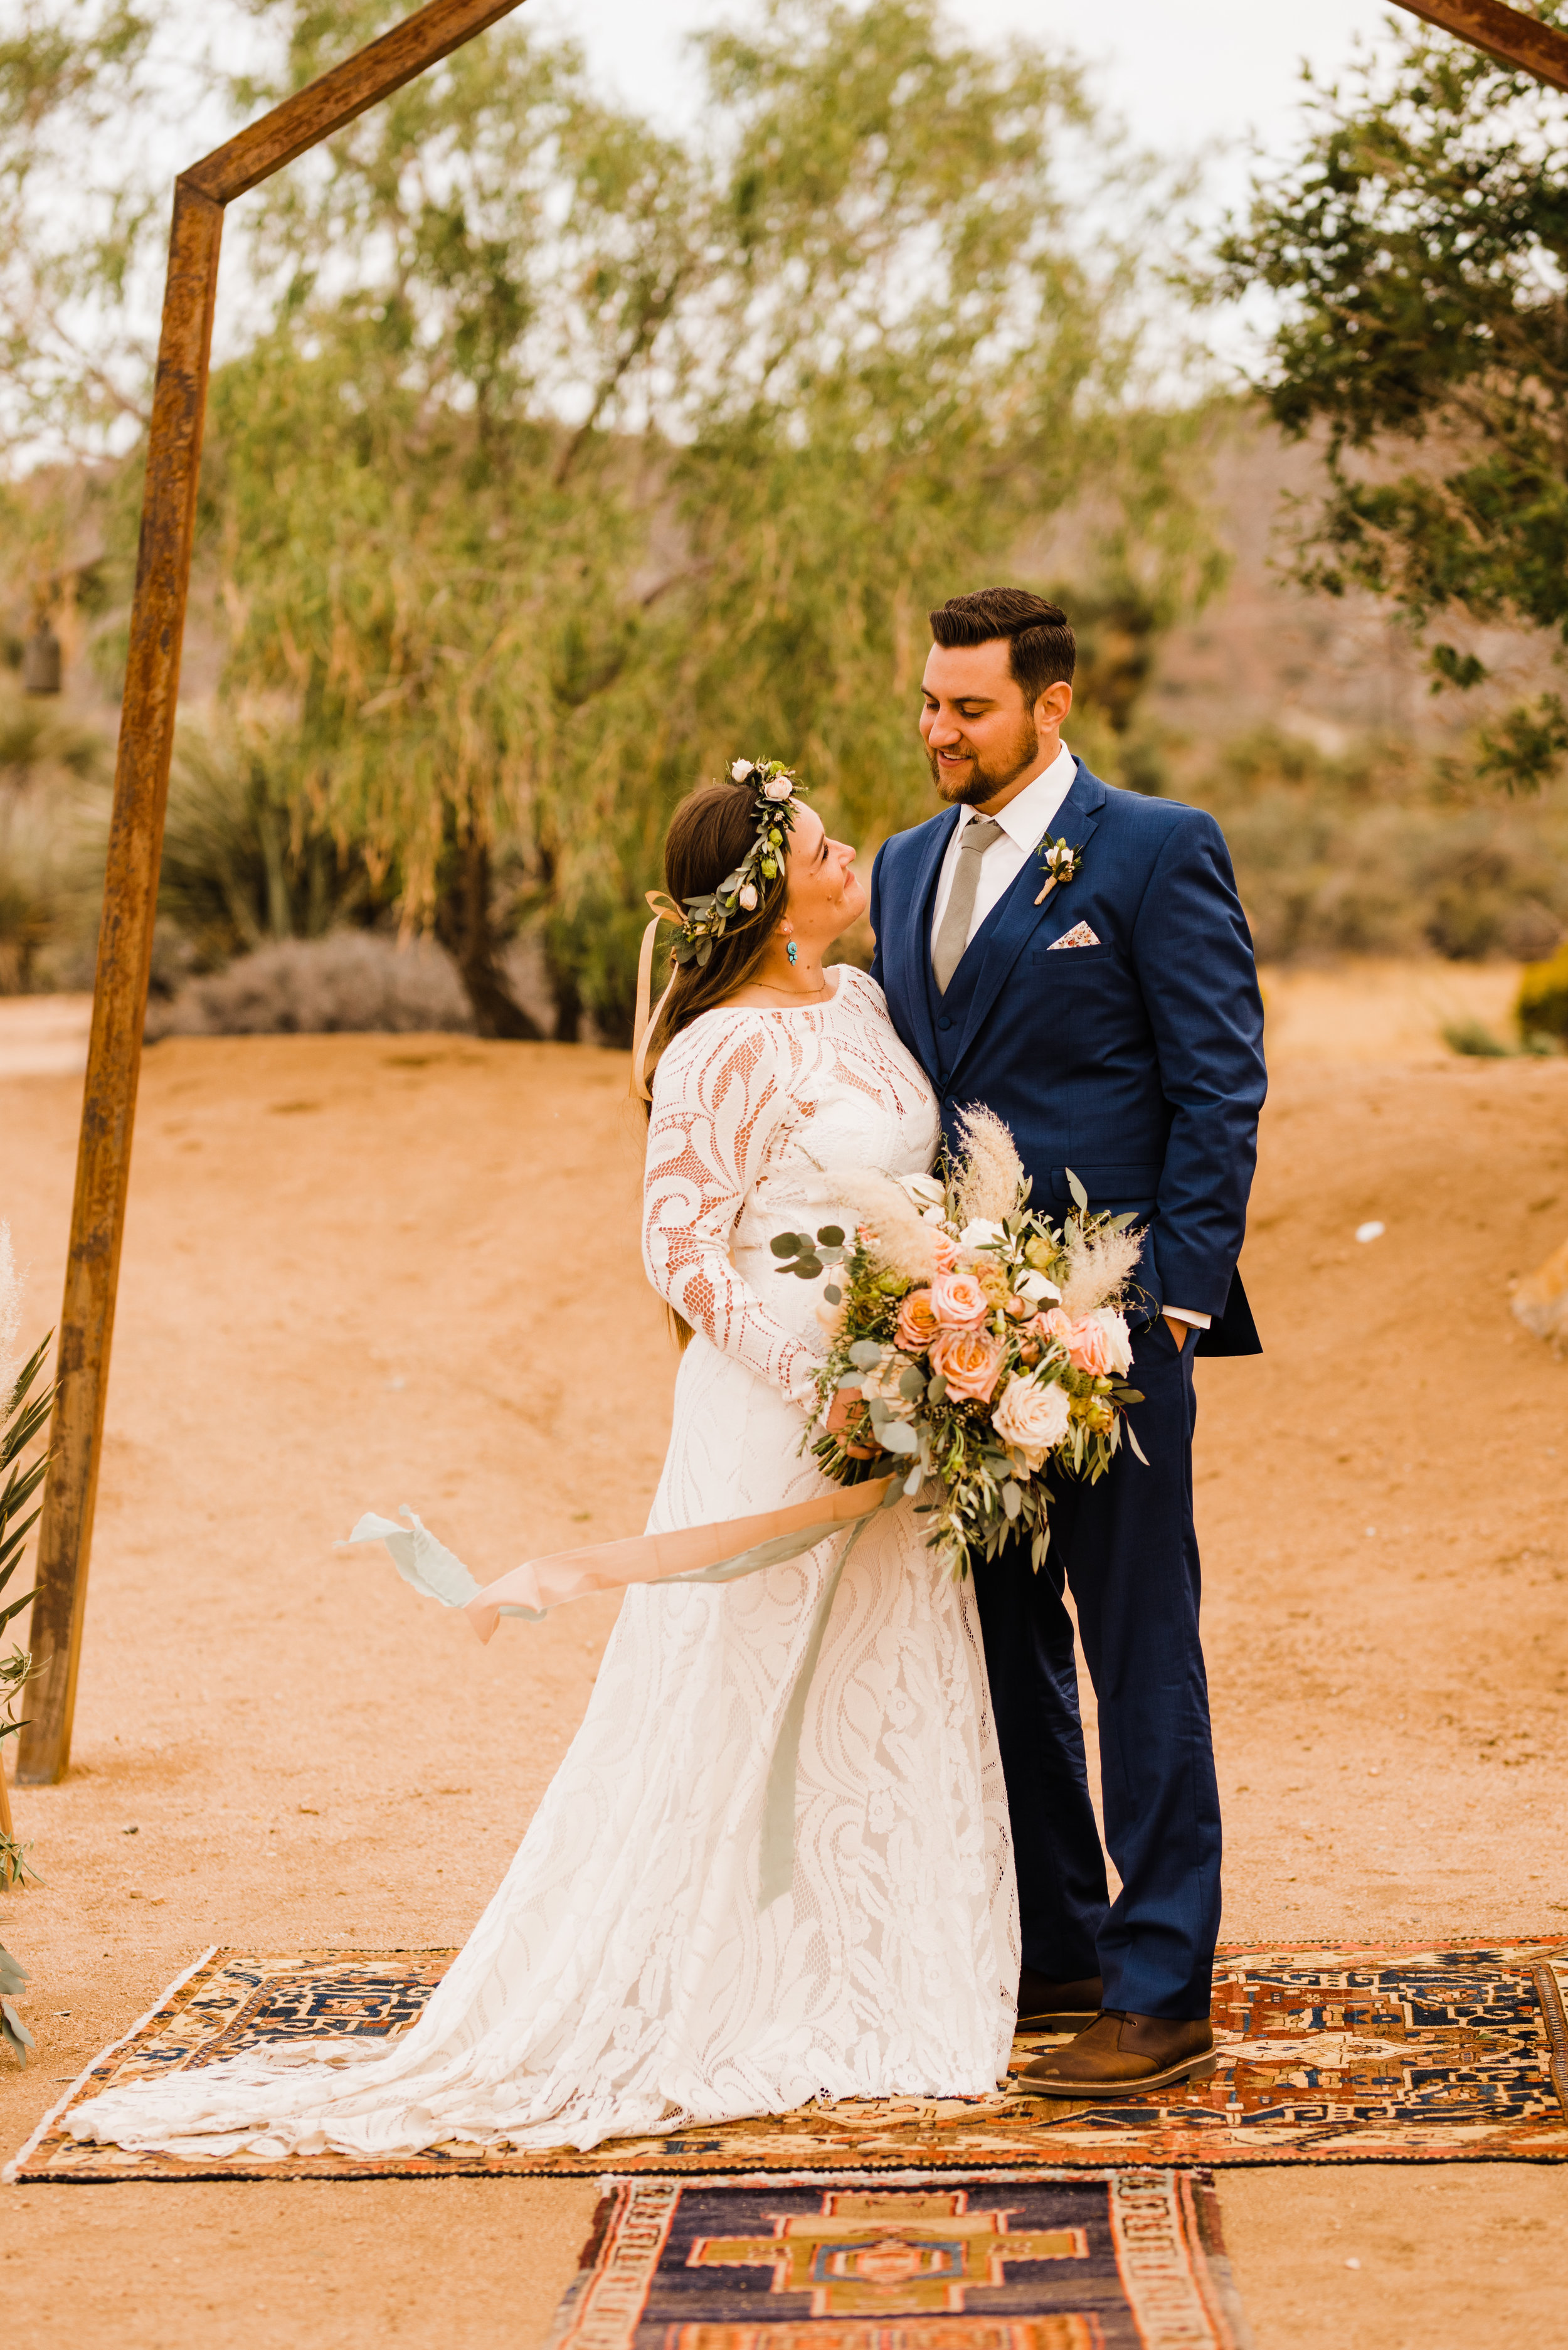 Bride in Lovers Society North Gown with White and Green Flower Crown. Groom in Friar Tux blue suit and pink tie.